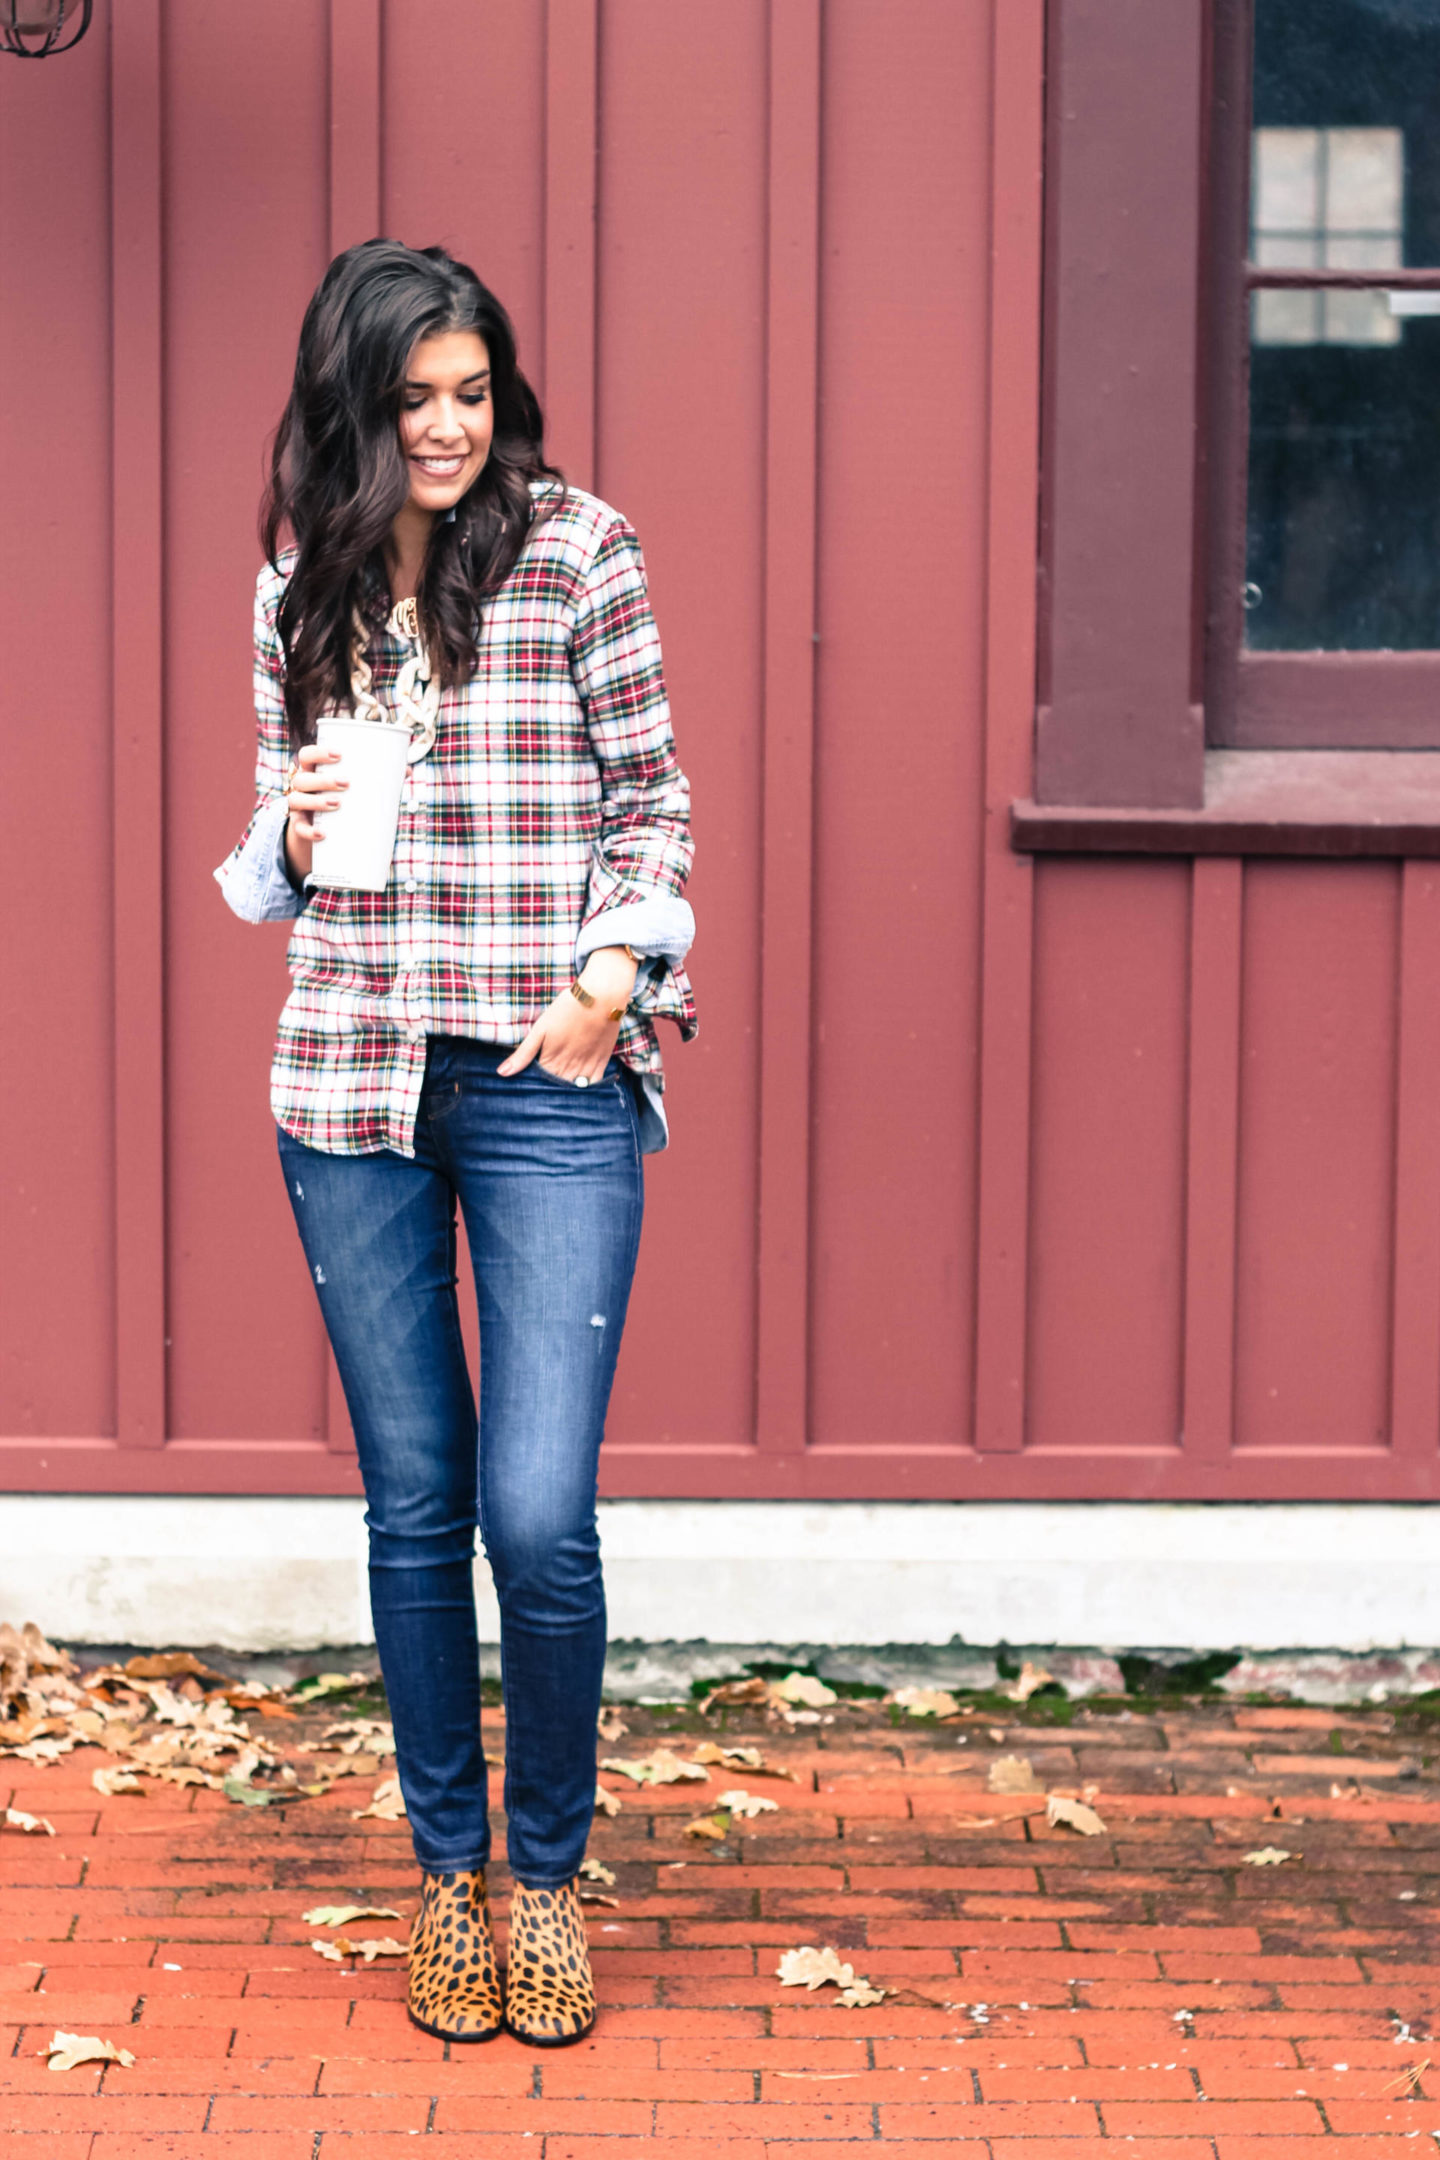 Dressing Up Your Favorite Plaid Shirt This Holiday Season